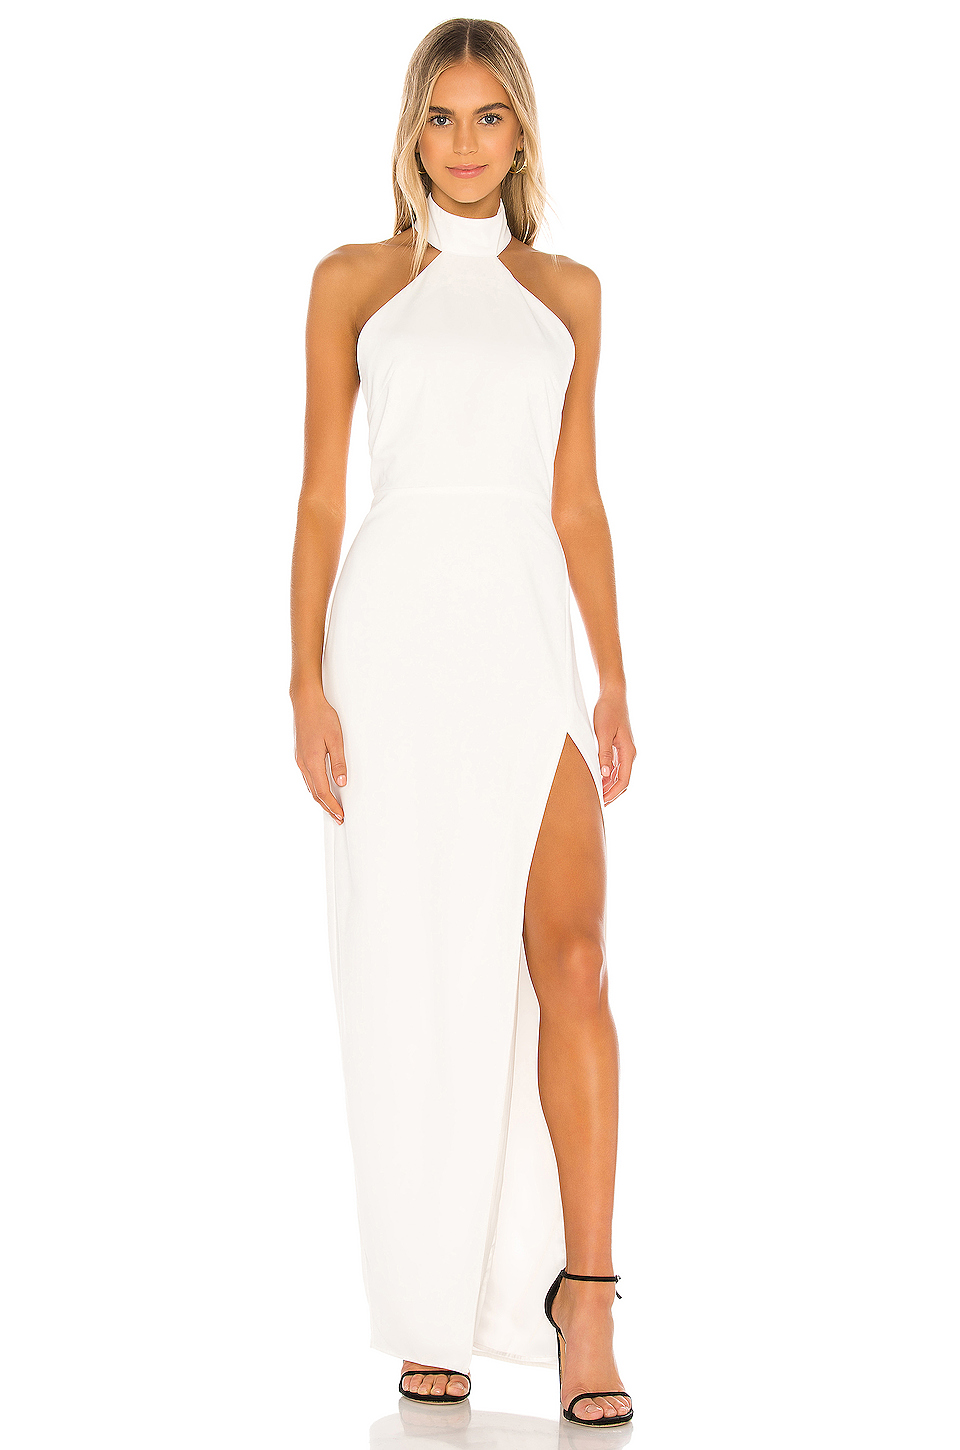 NBD Wilma Gown in White | REVOLVE in 2020 | Gowns, Fashion, Crepe ...